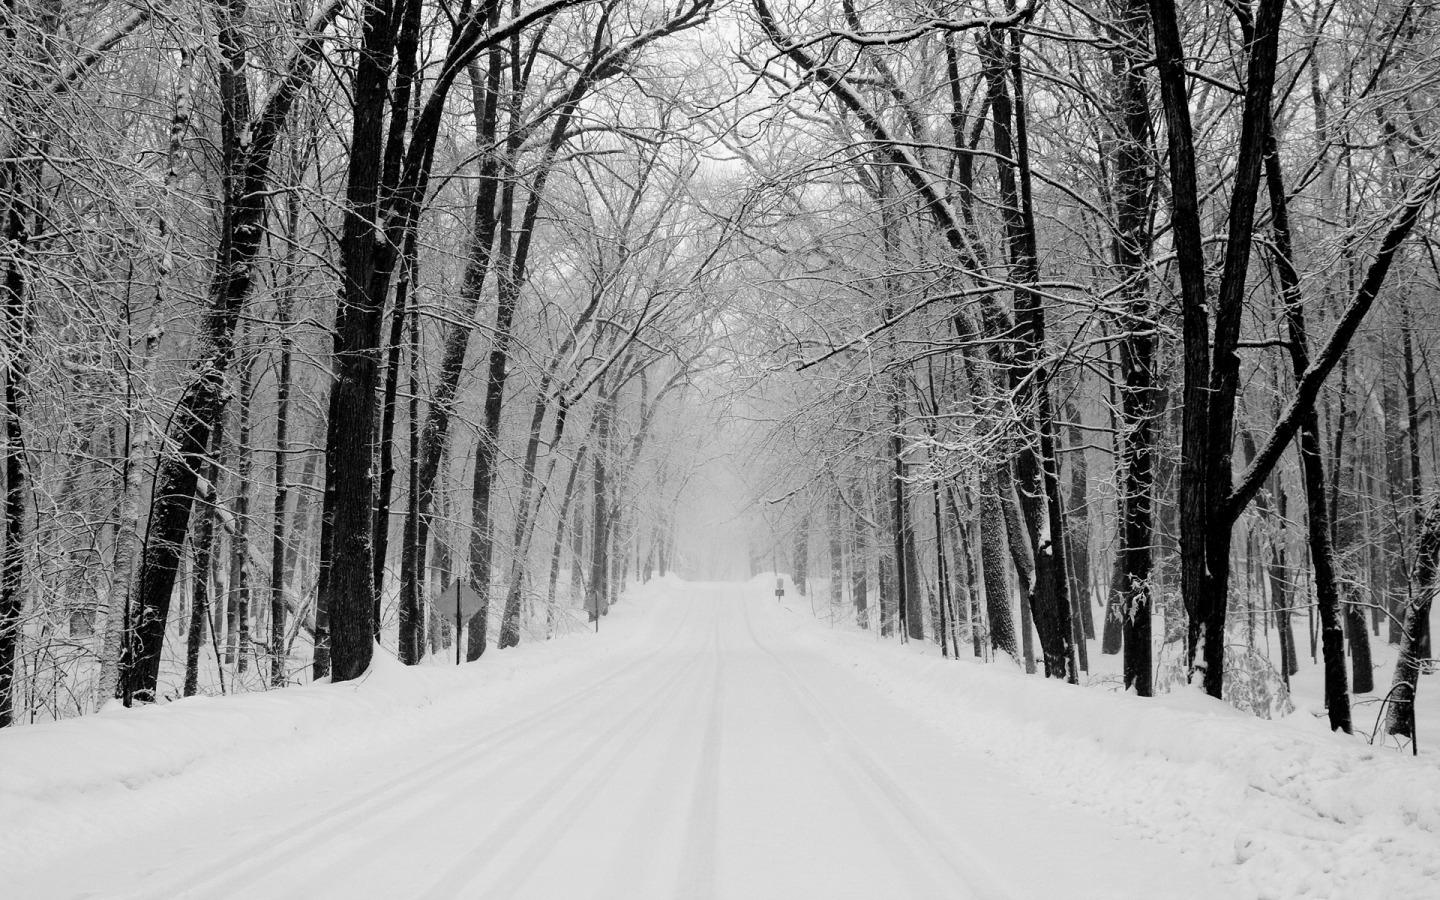 Download Wallpaper snow trees roads -1952-6